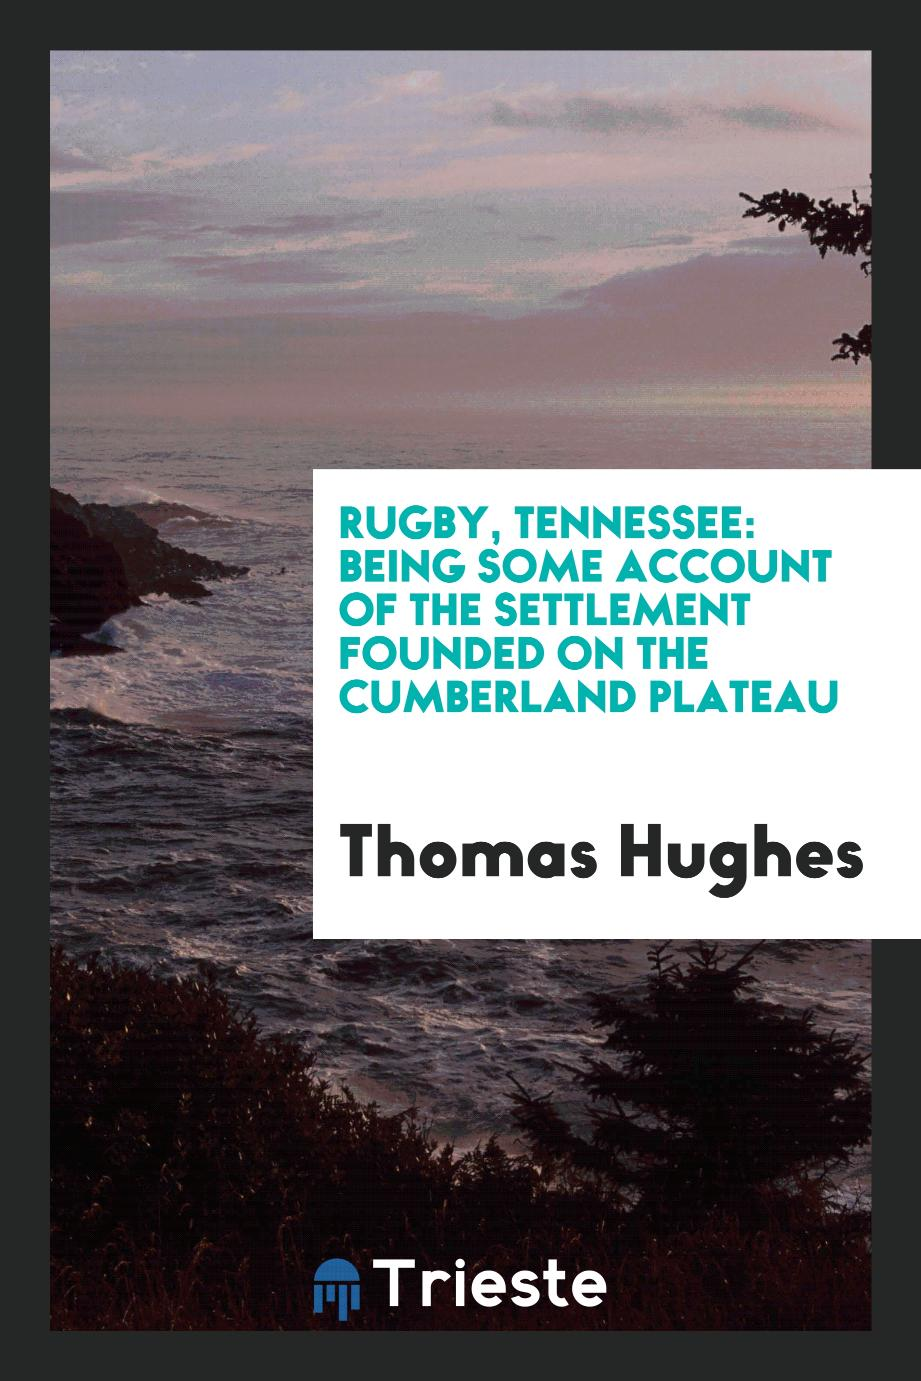 Rugby, Tennessee: Being Some Account of the Settlement Founded on the Cumberland Plateau